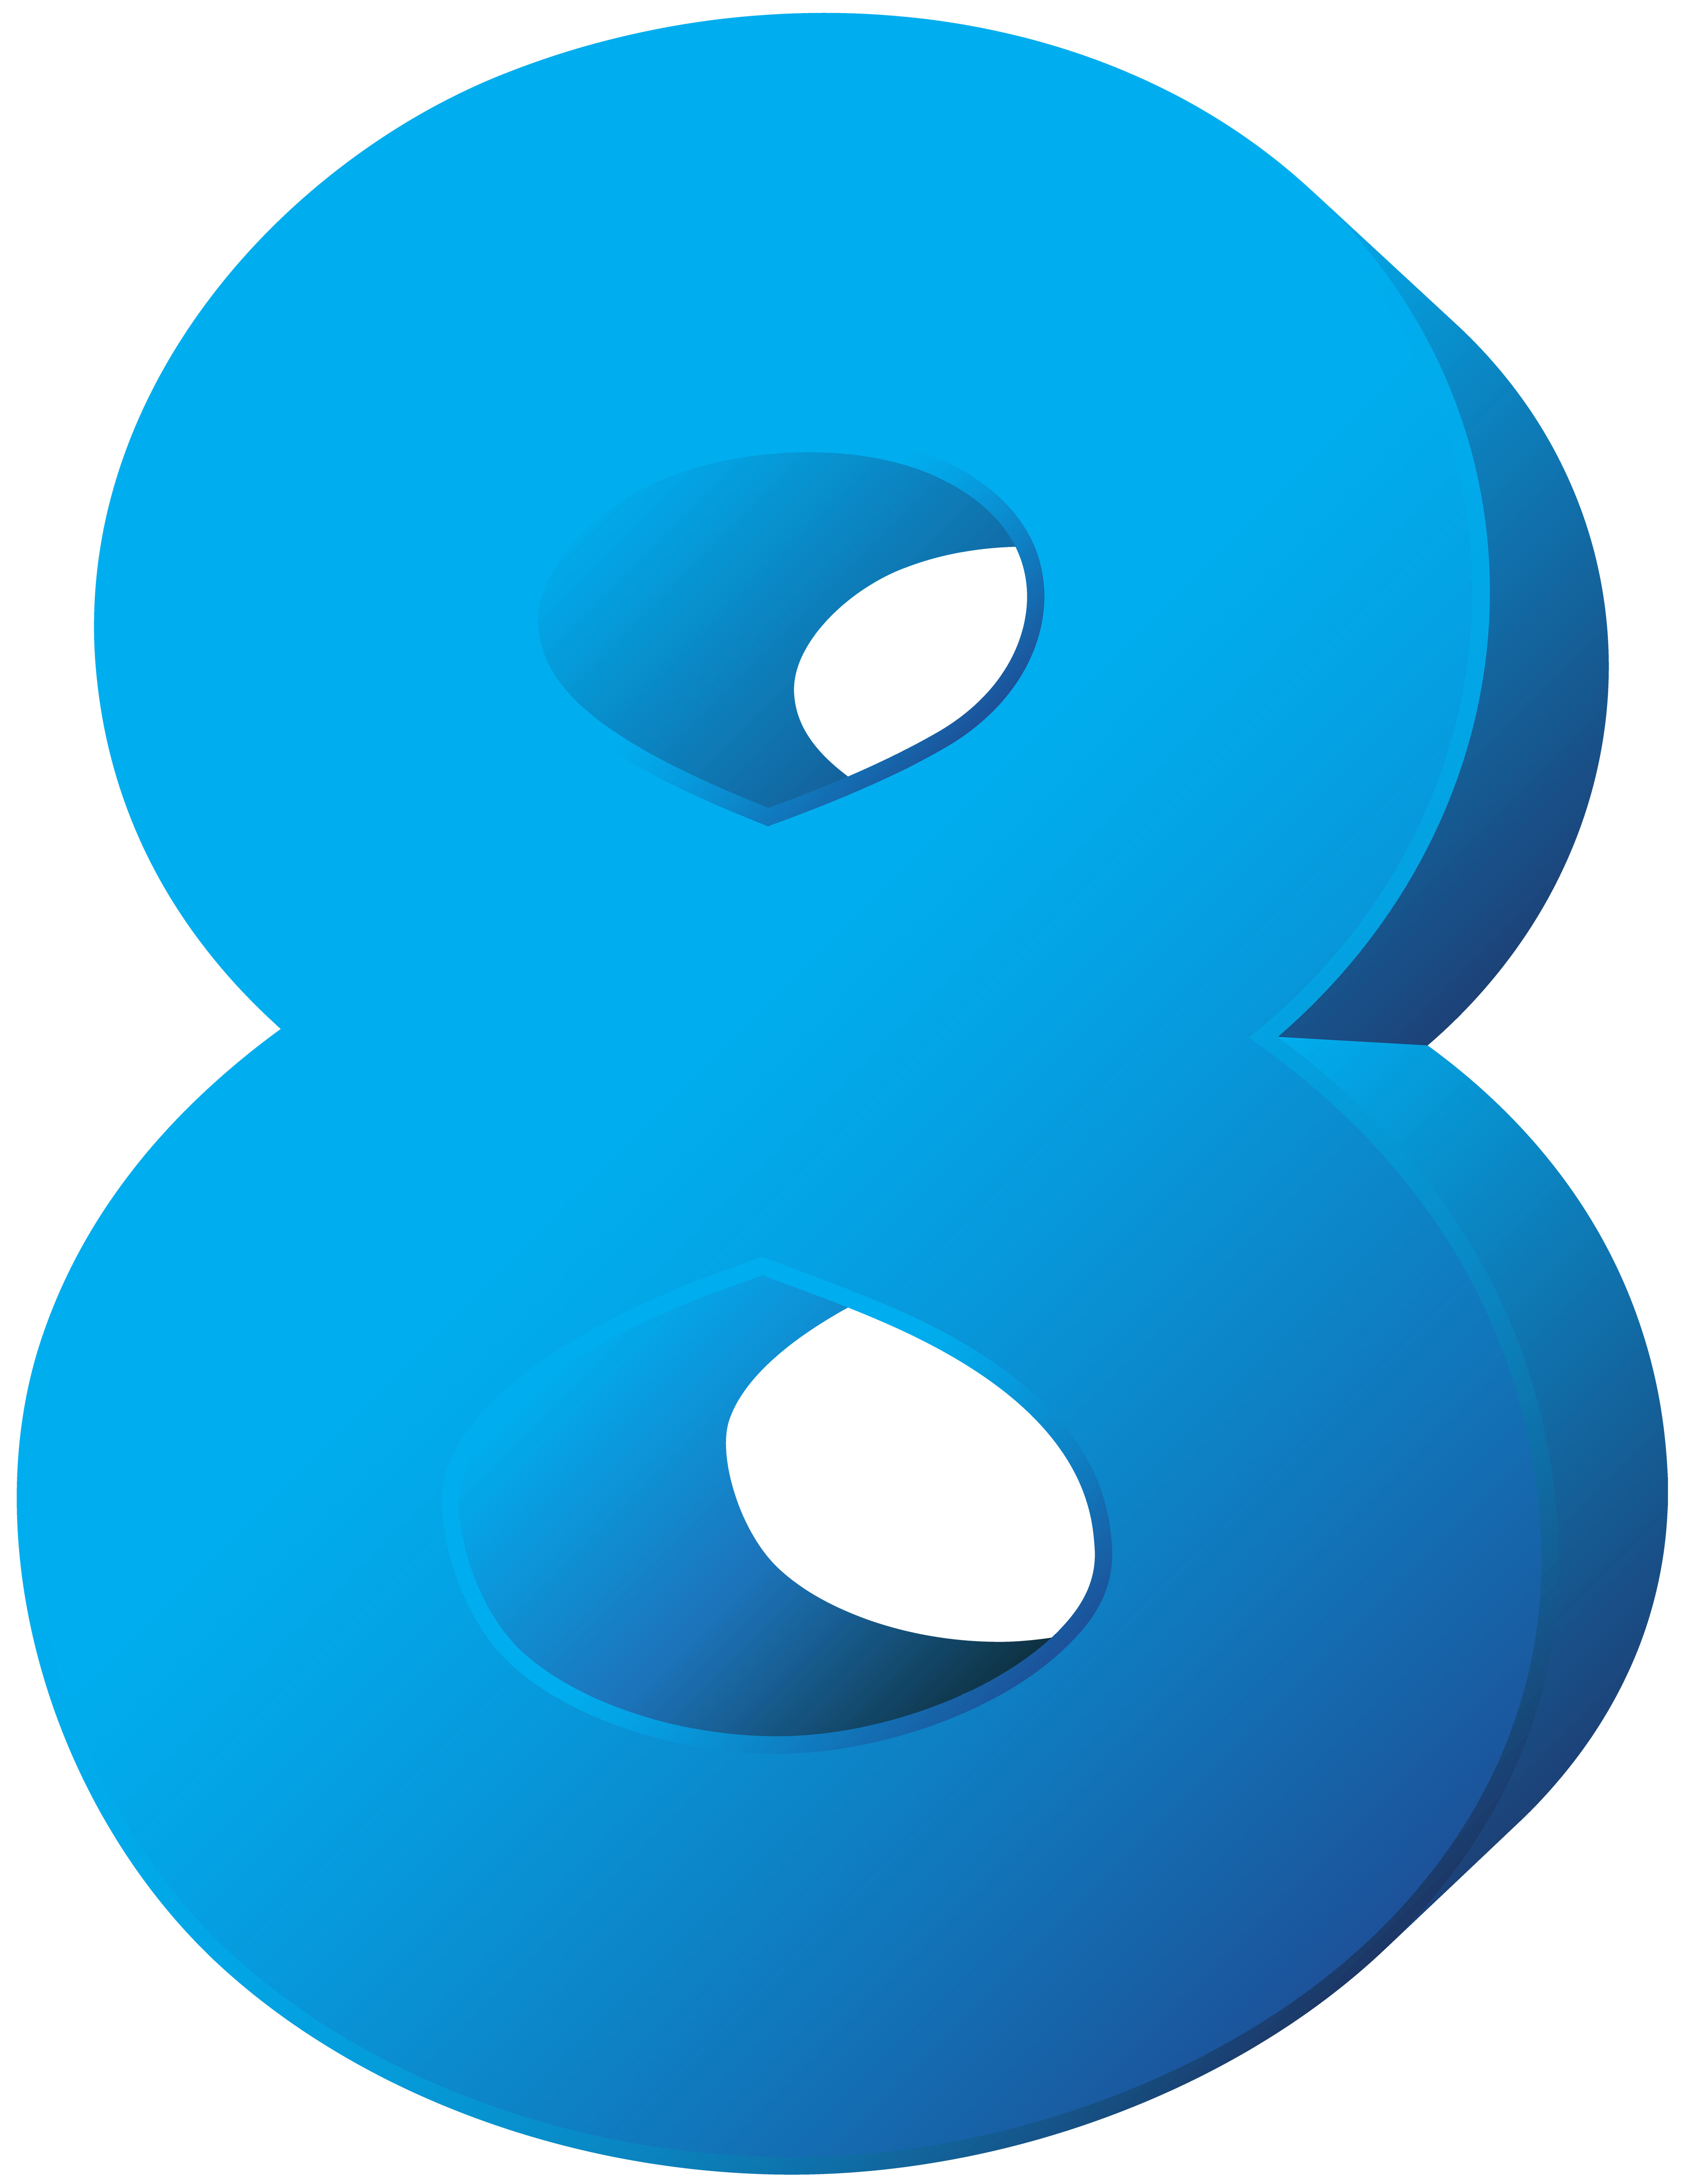 Number clipart blue. Eight transparent png clip